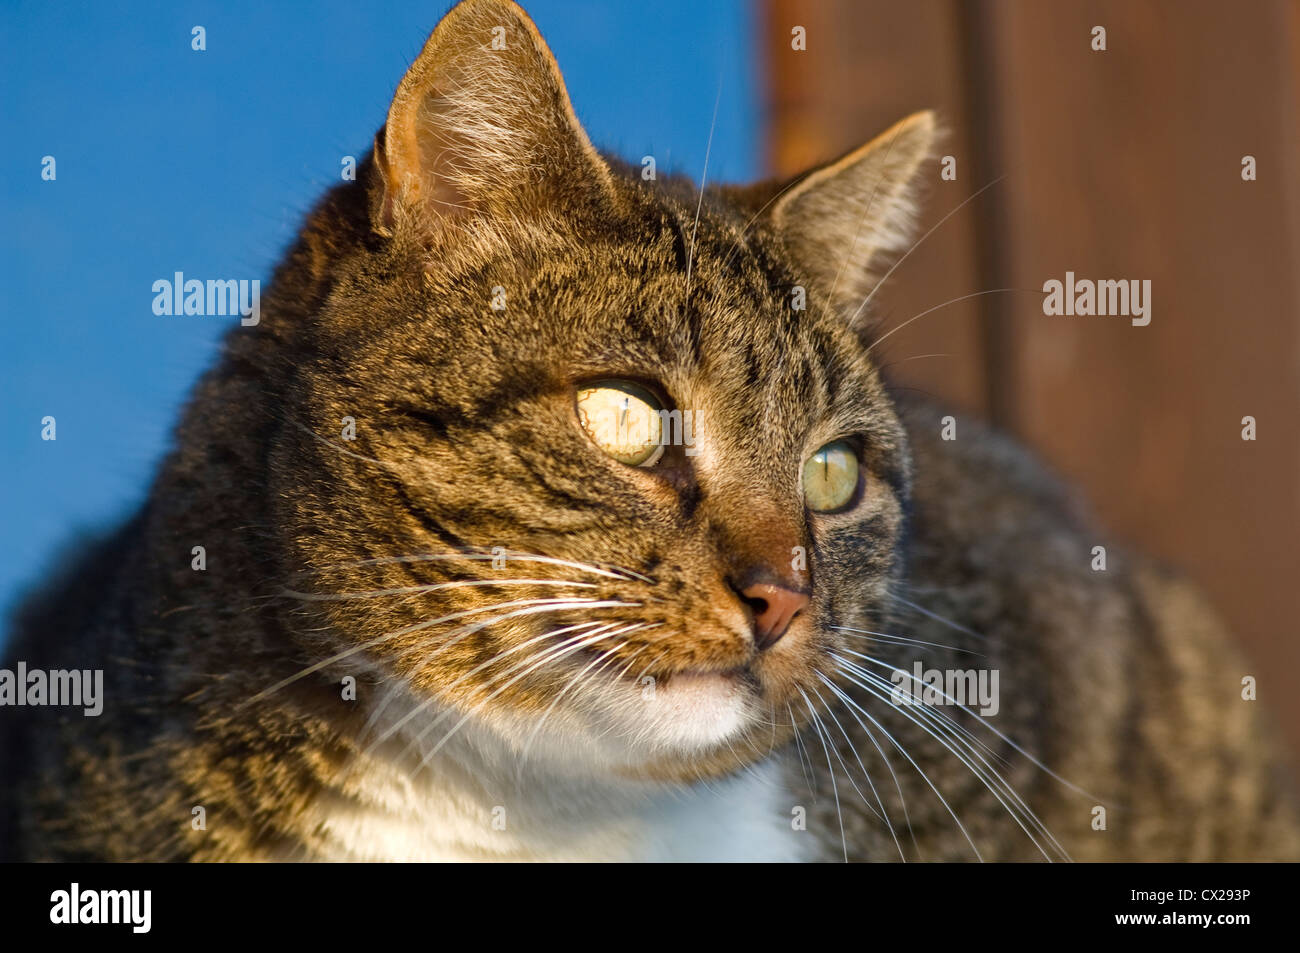 Tomcat sitting on window sill observing something attentively - Stock Image